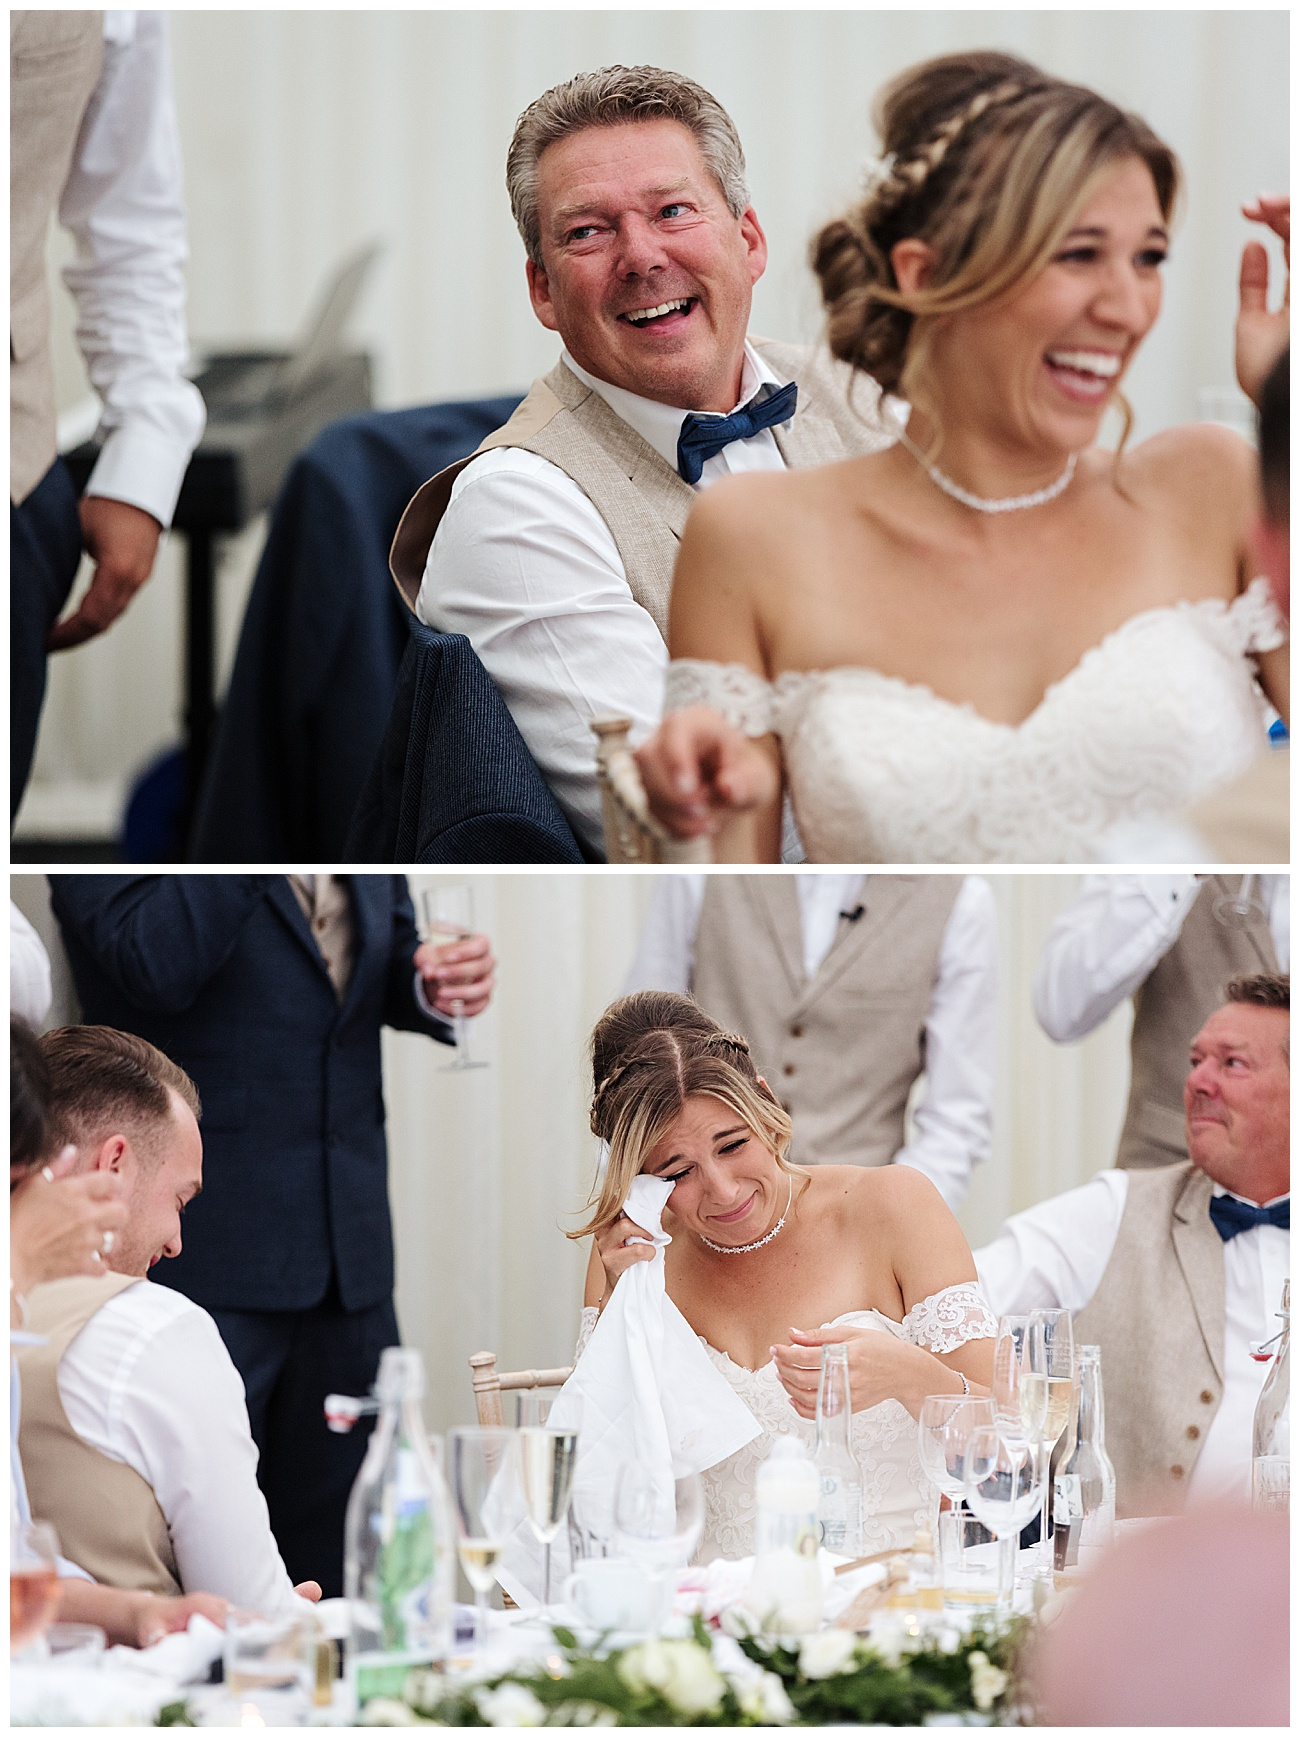 The bride gets emotional during the speeches